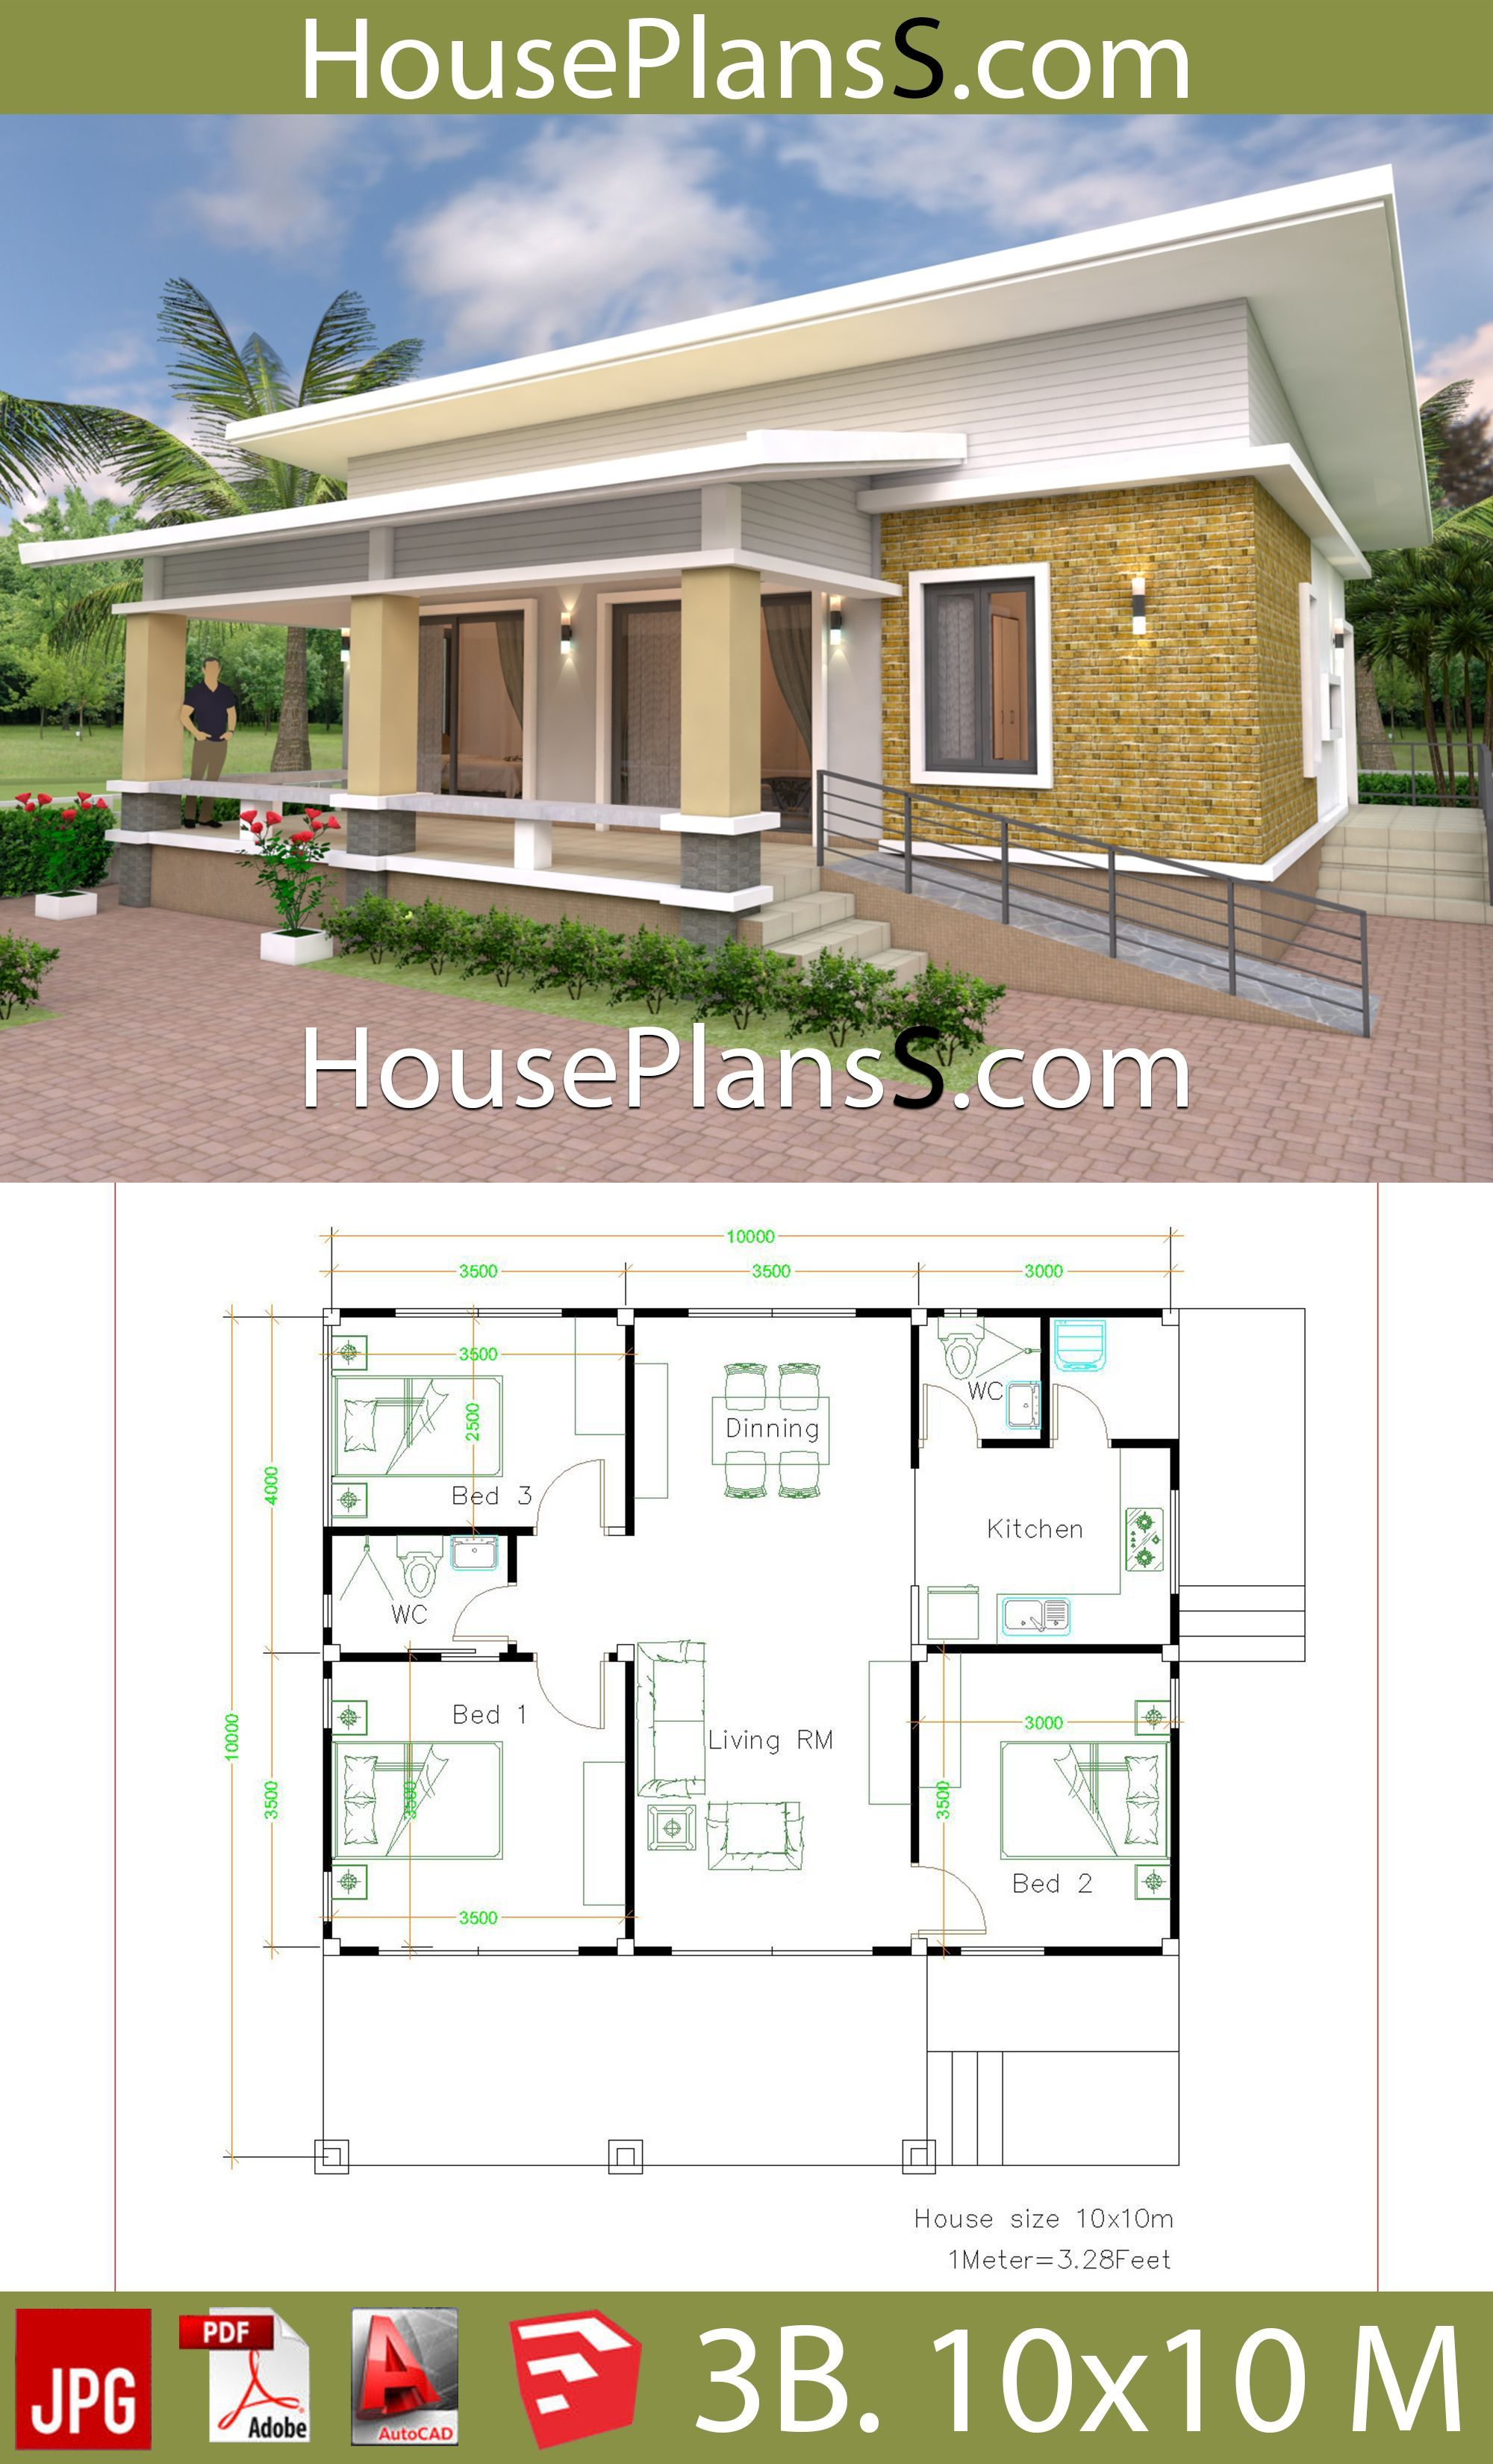 10x10 Bedroom Plans: House Design Plans 10x10 With 3 Bedrooms Full InteriorThe